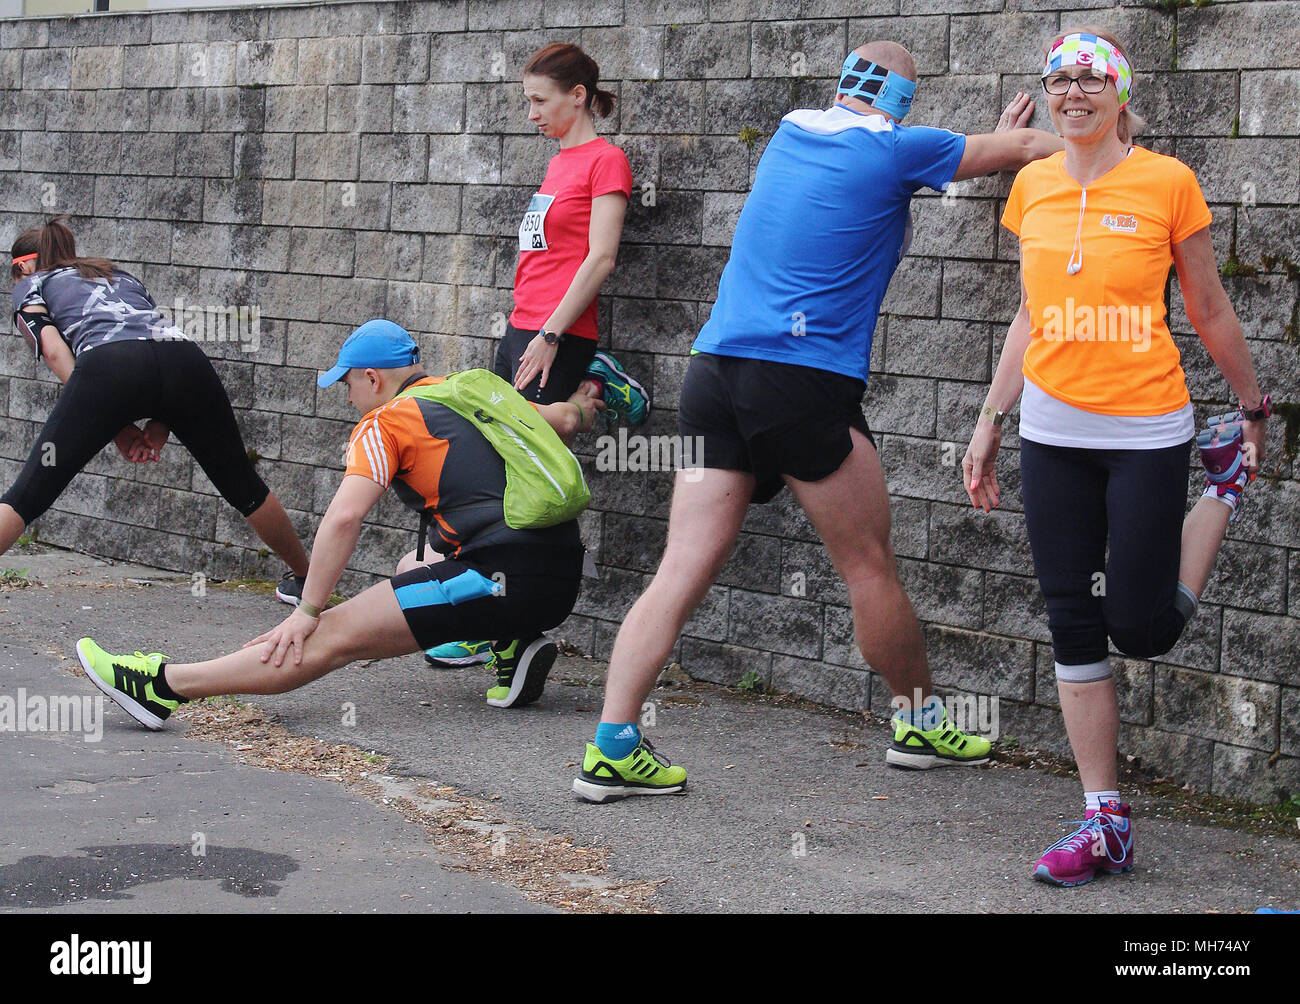 Runners doing stretching before the start of a marathon - active fit people - Stock Image